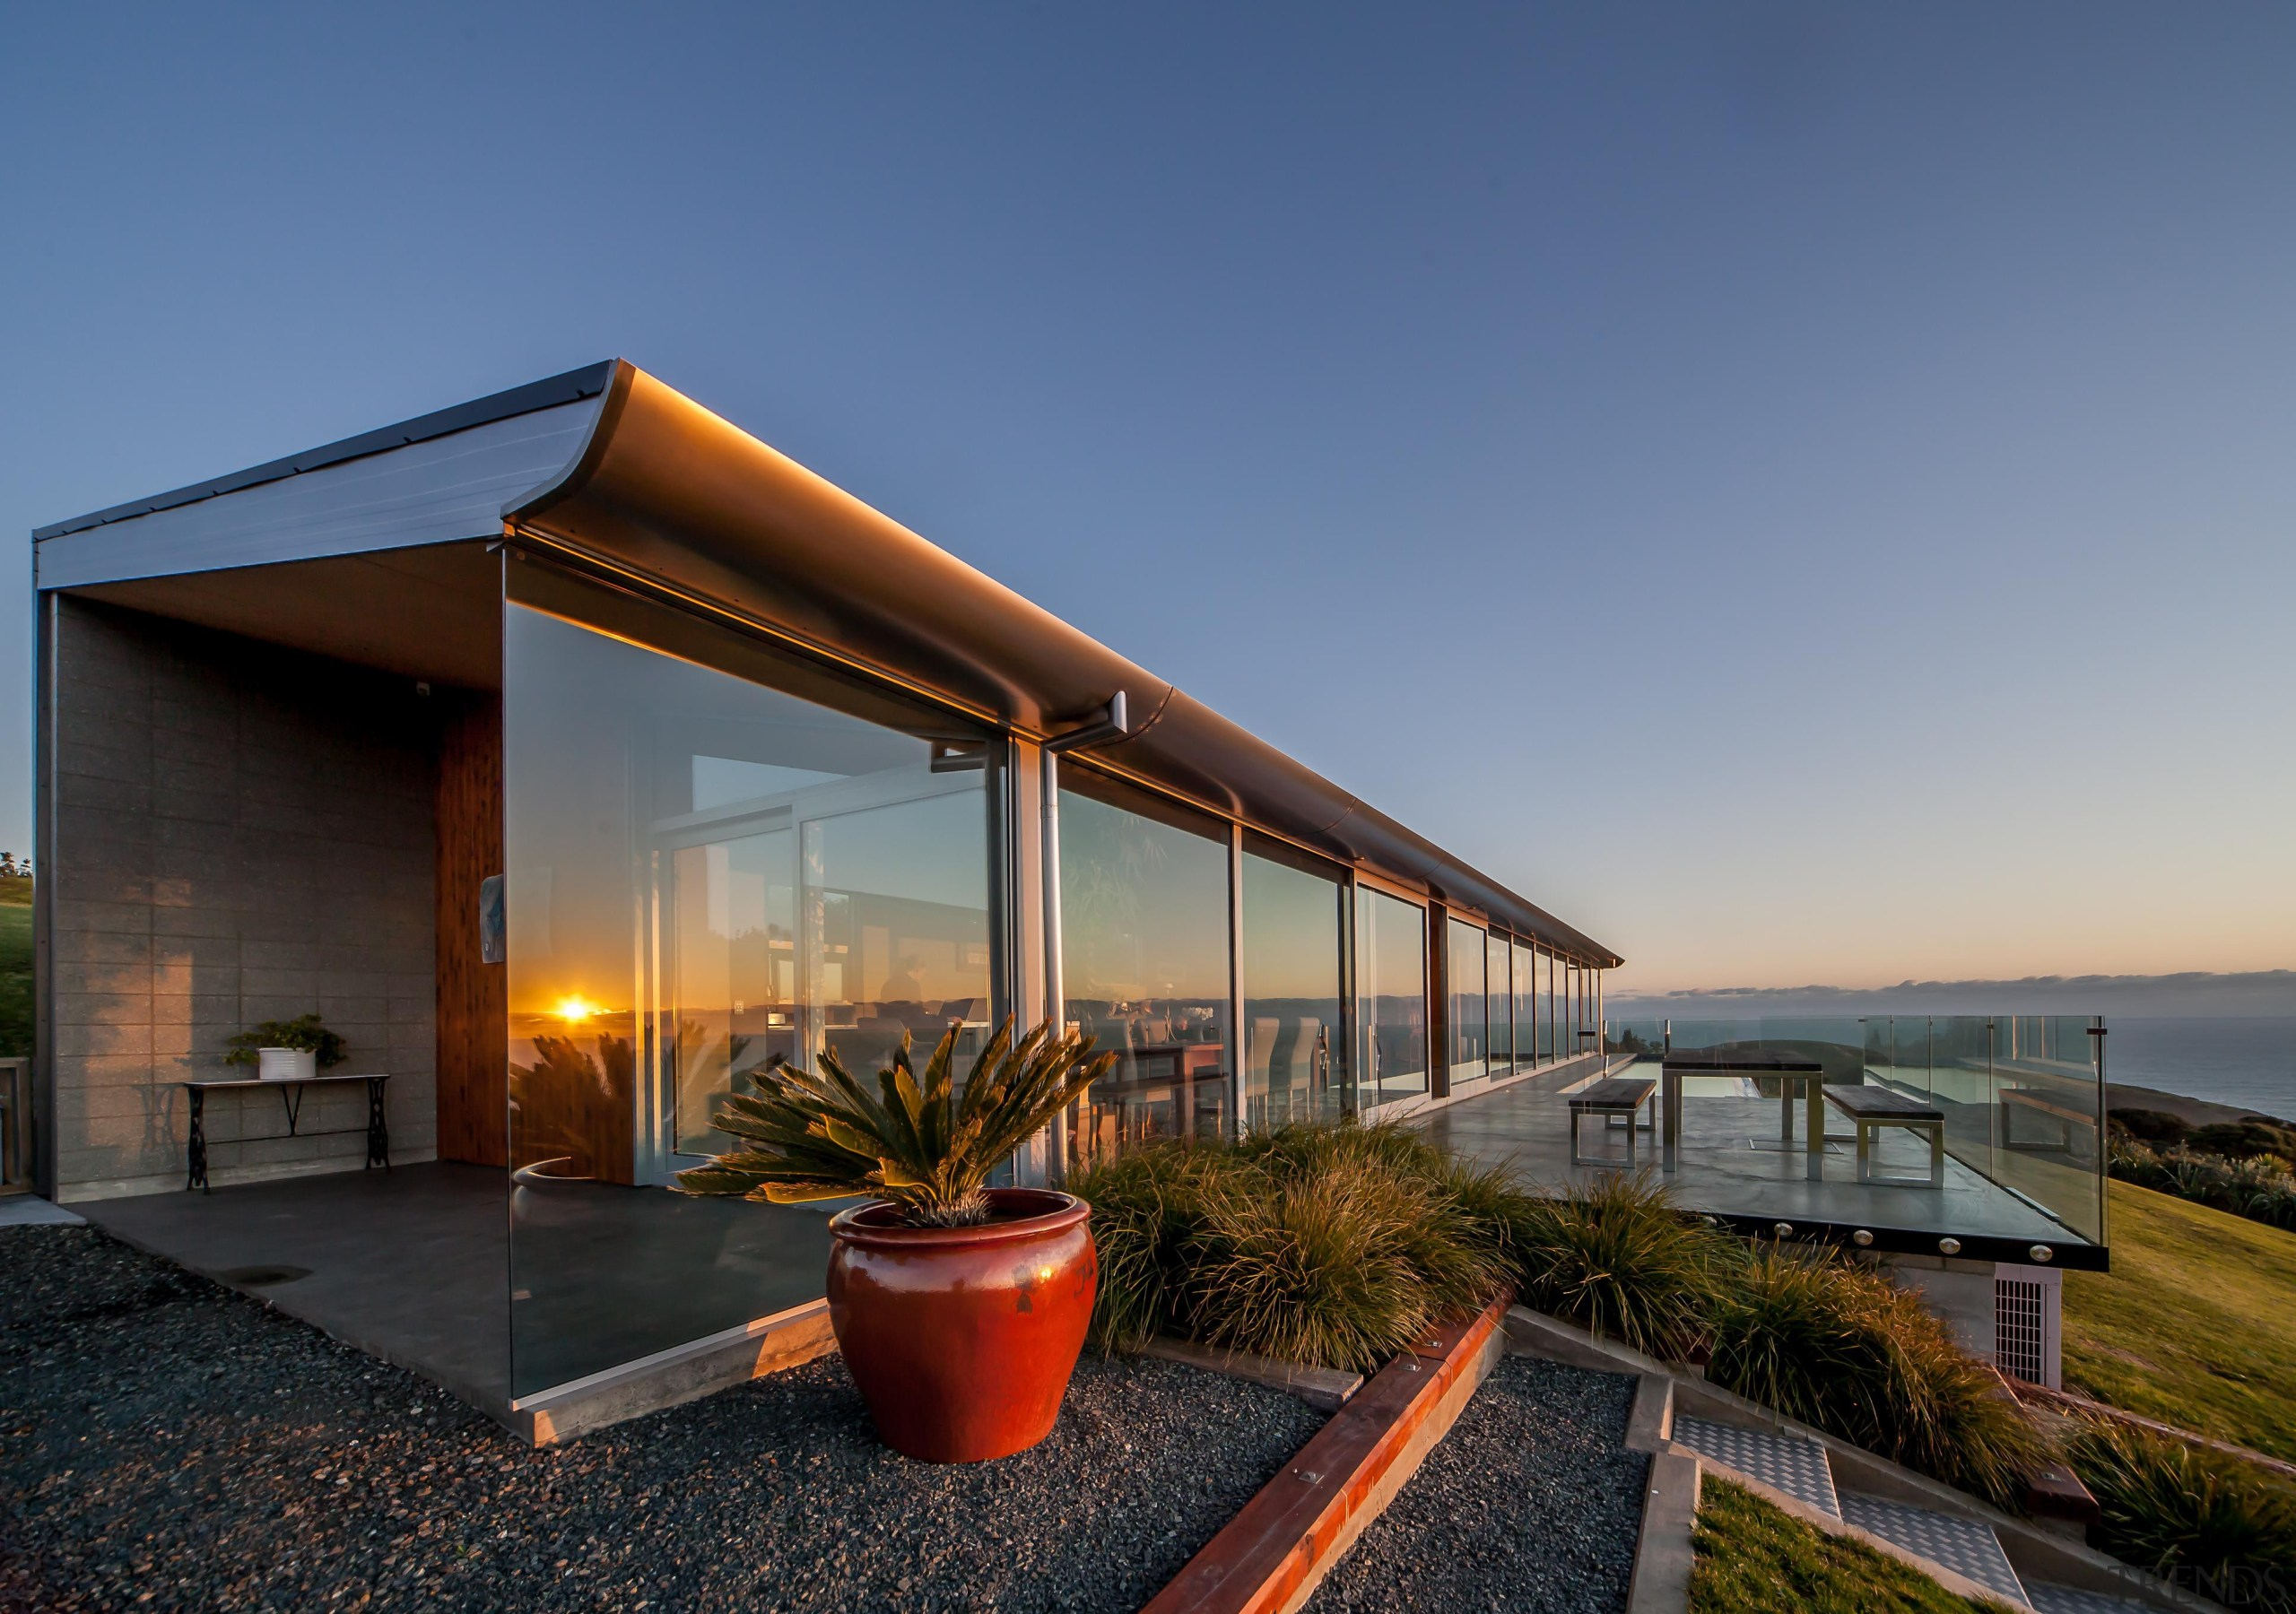 Capturing the spectacular views was a priority for architecture, estate, home, house, property, real estate, blue